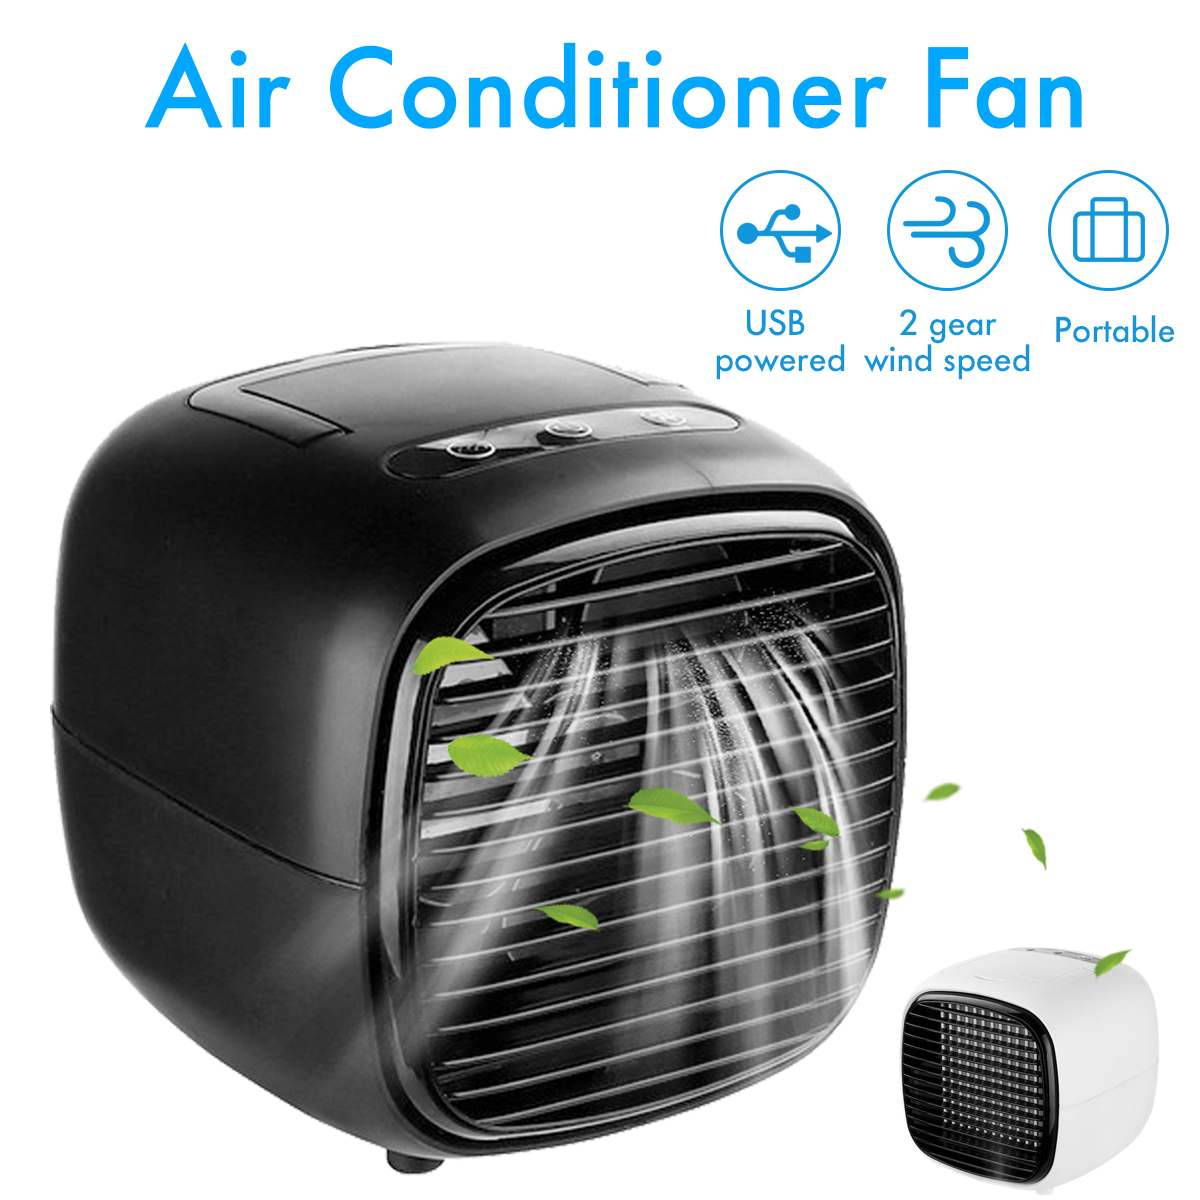 Humidifiers Mini Air Conditioner Air Cooler Fans USB Portable Air Cooler Table mini Fan For Office Home Car Refrigerating Device